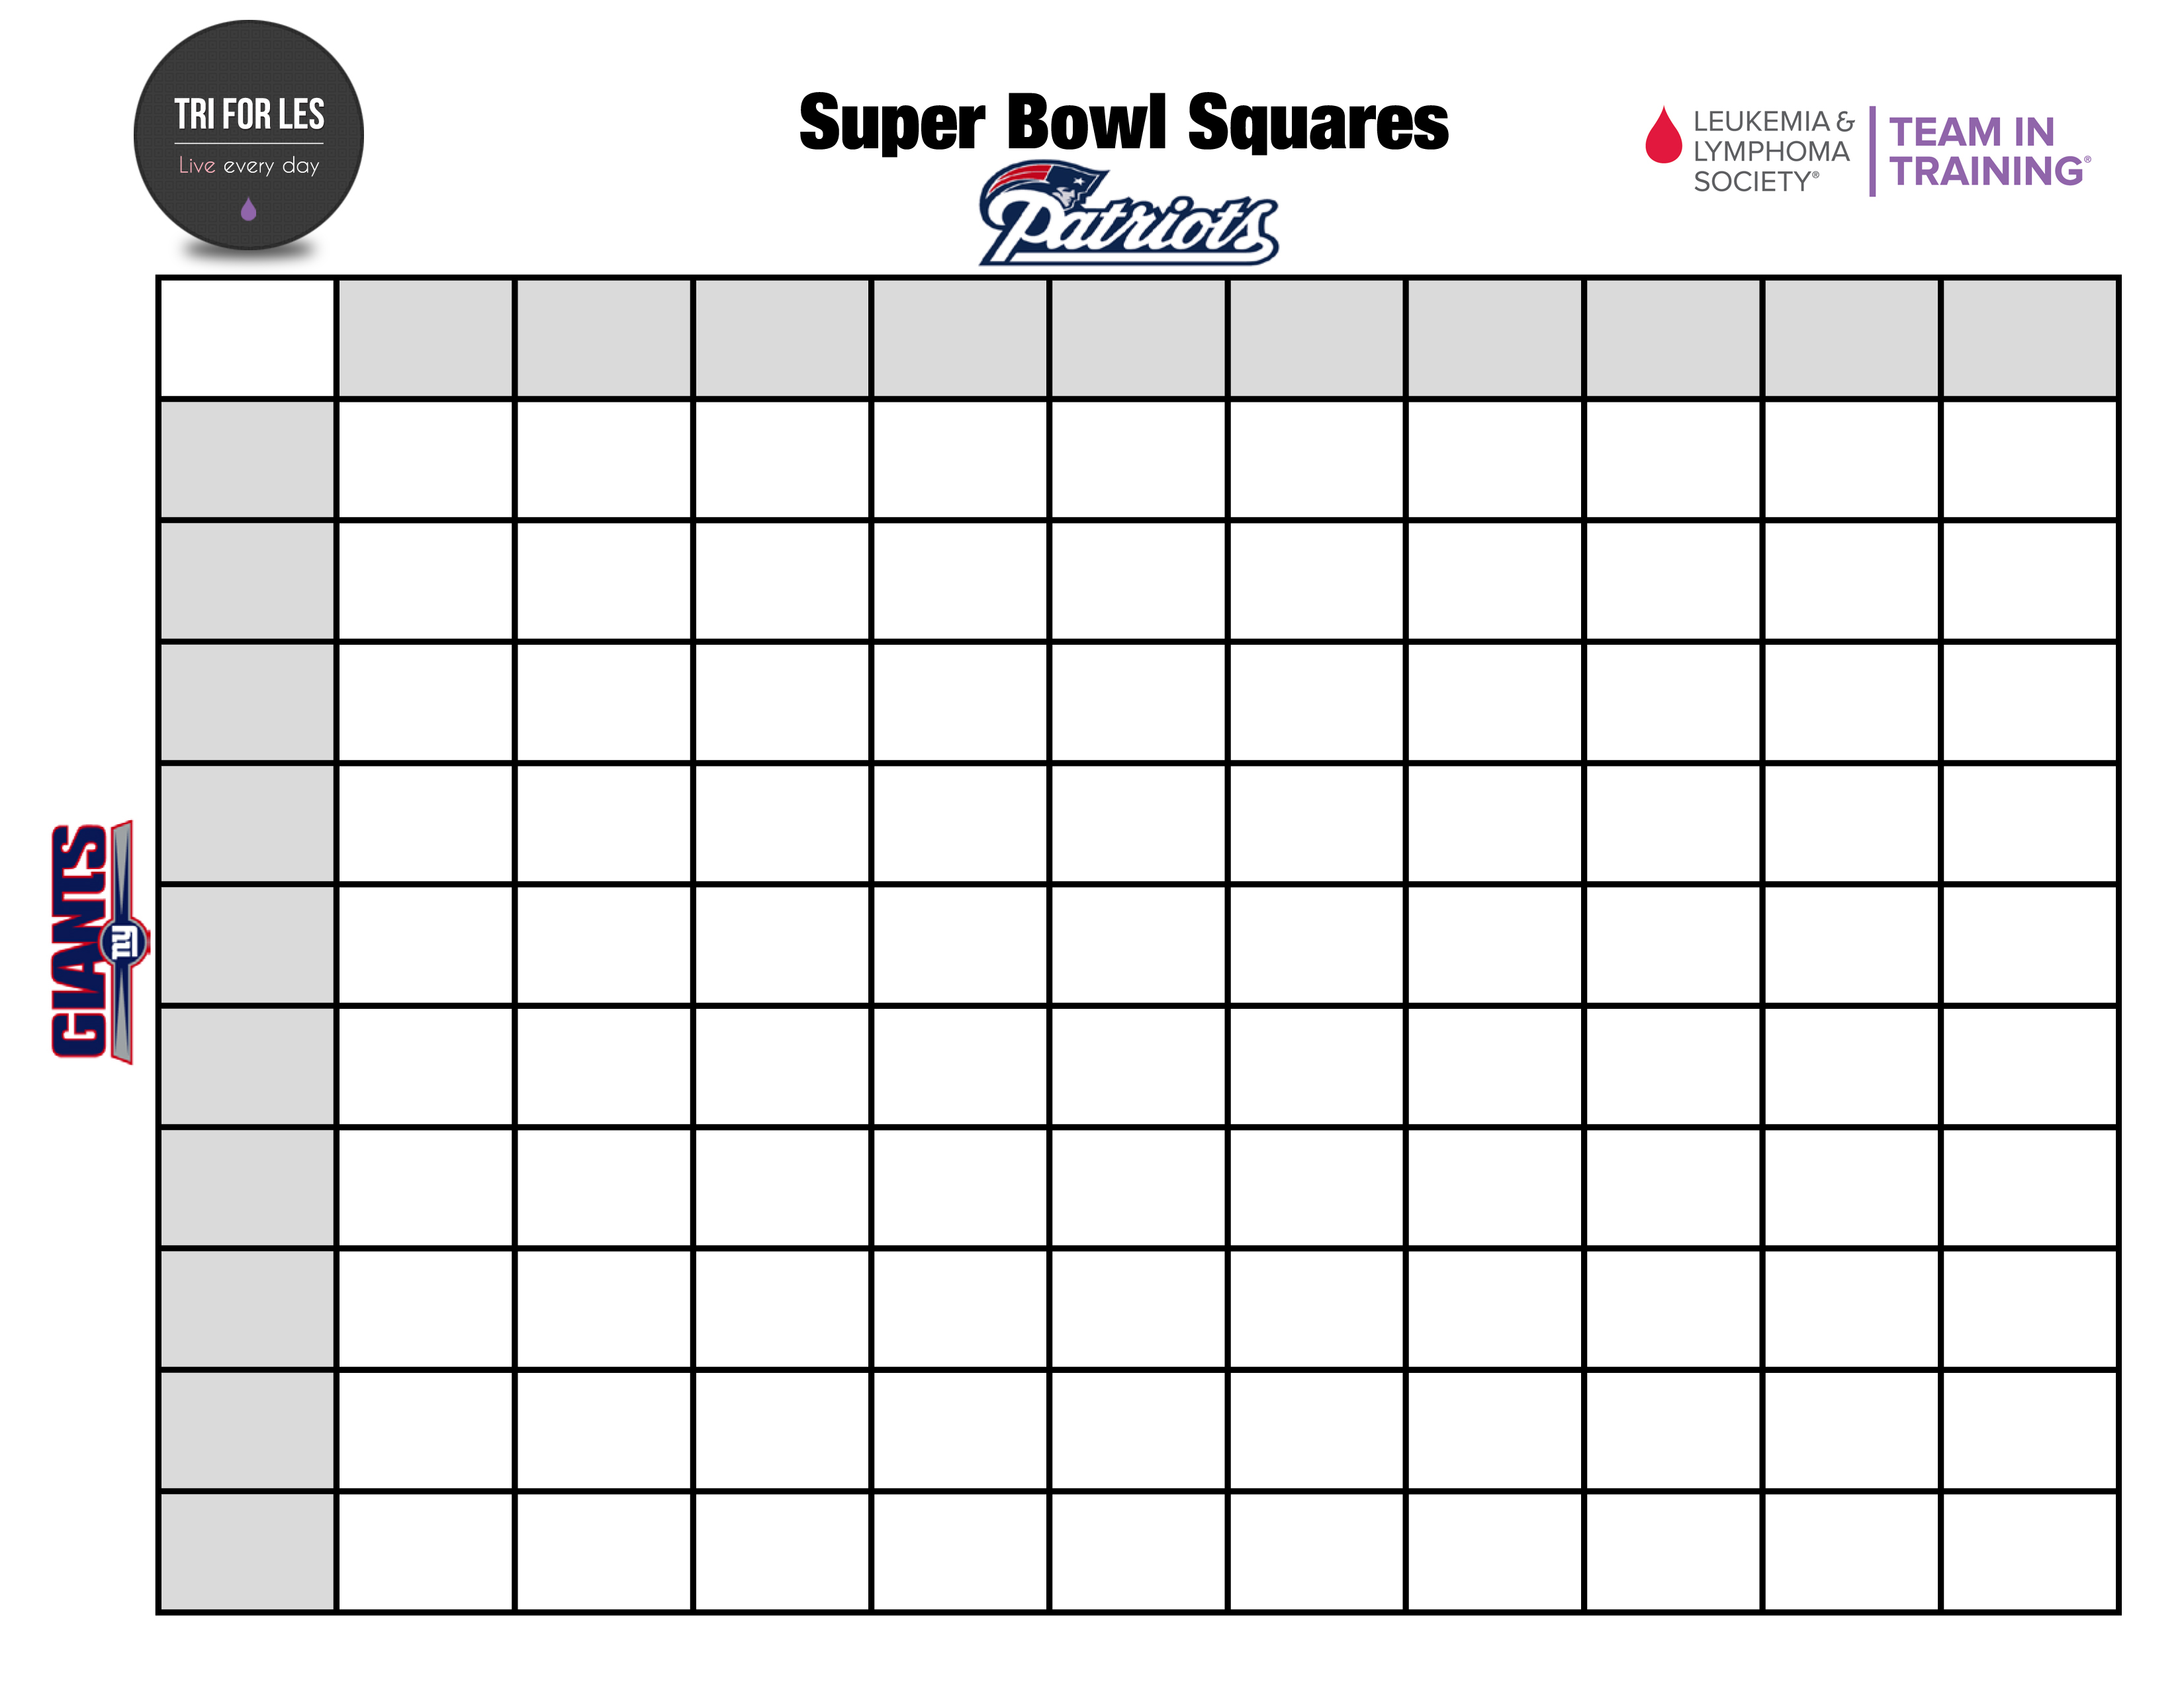 Super Bowl Squares Pool For Charity